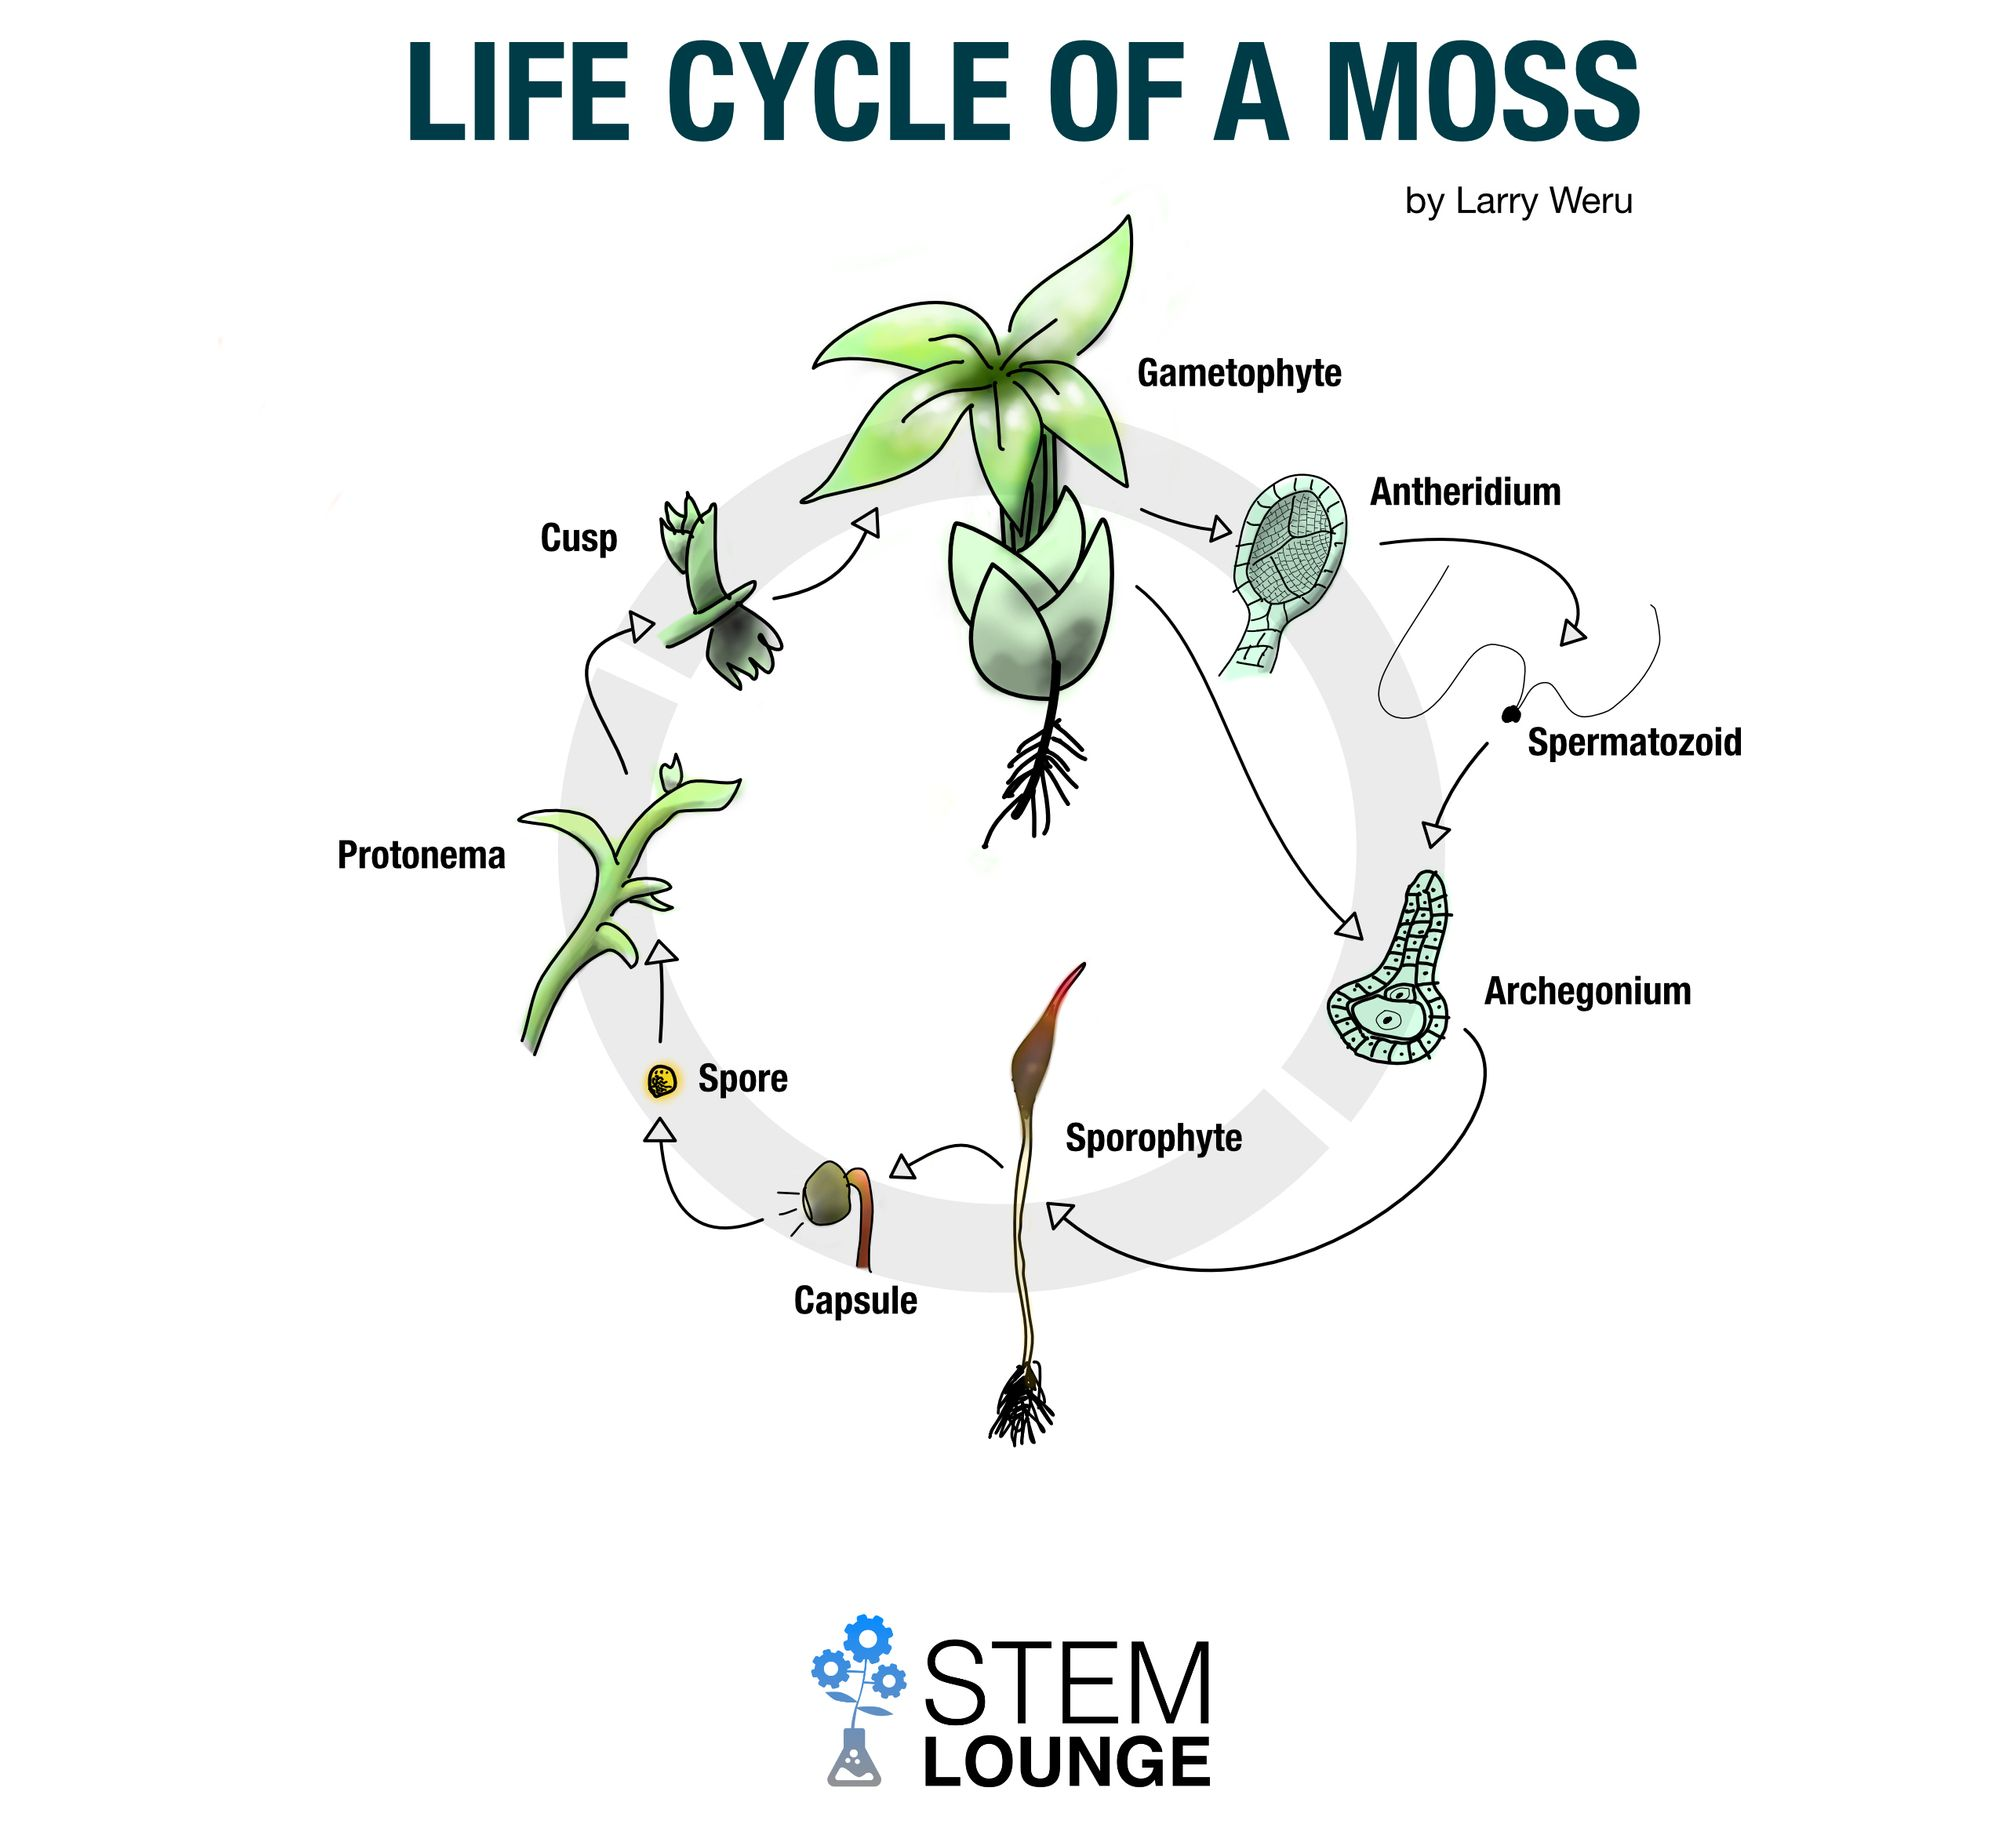 Life Cycle of a Moss - Infographic